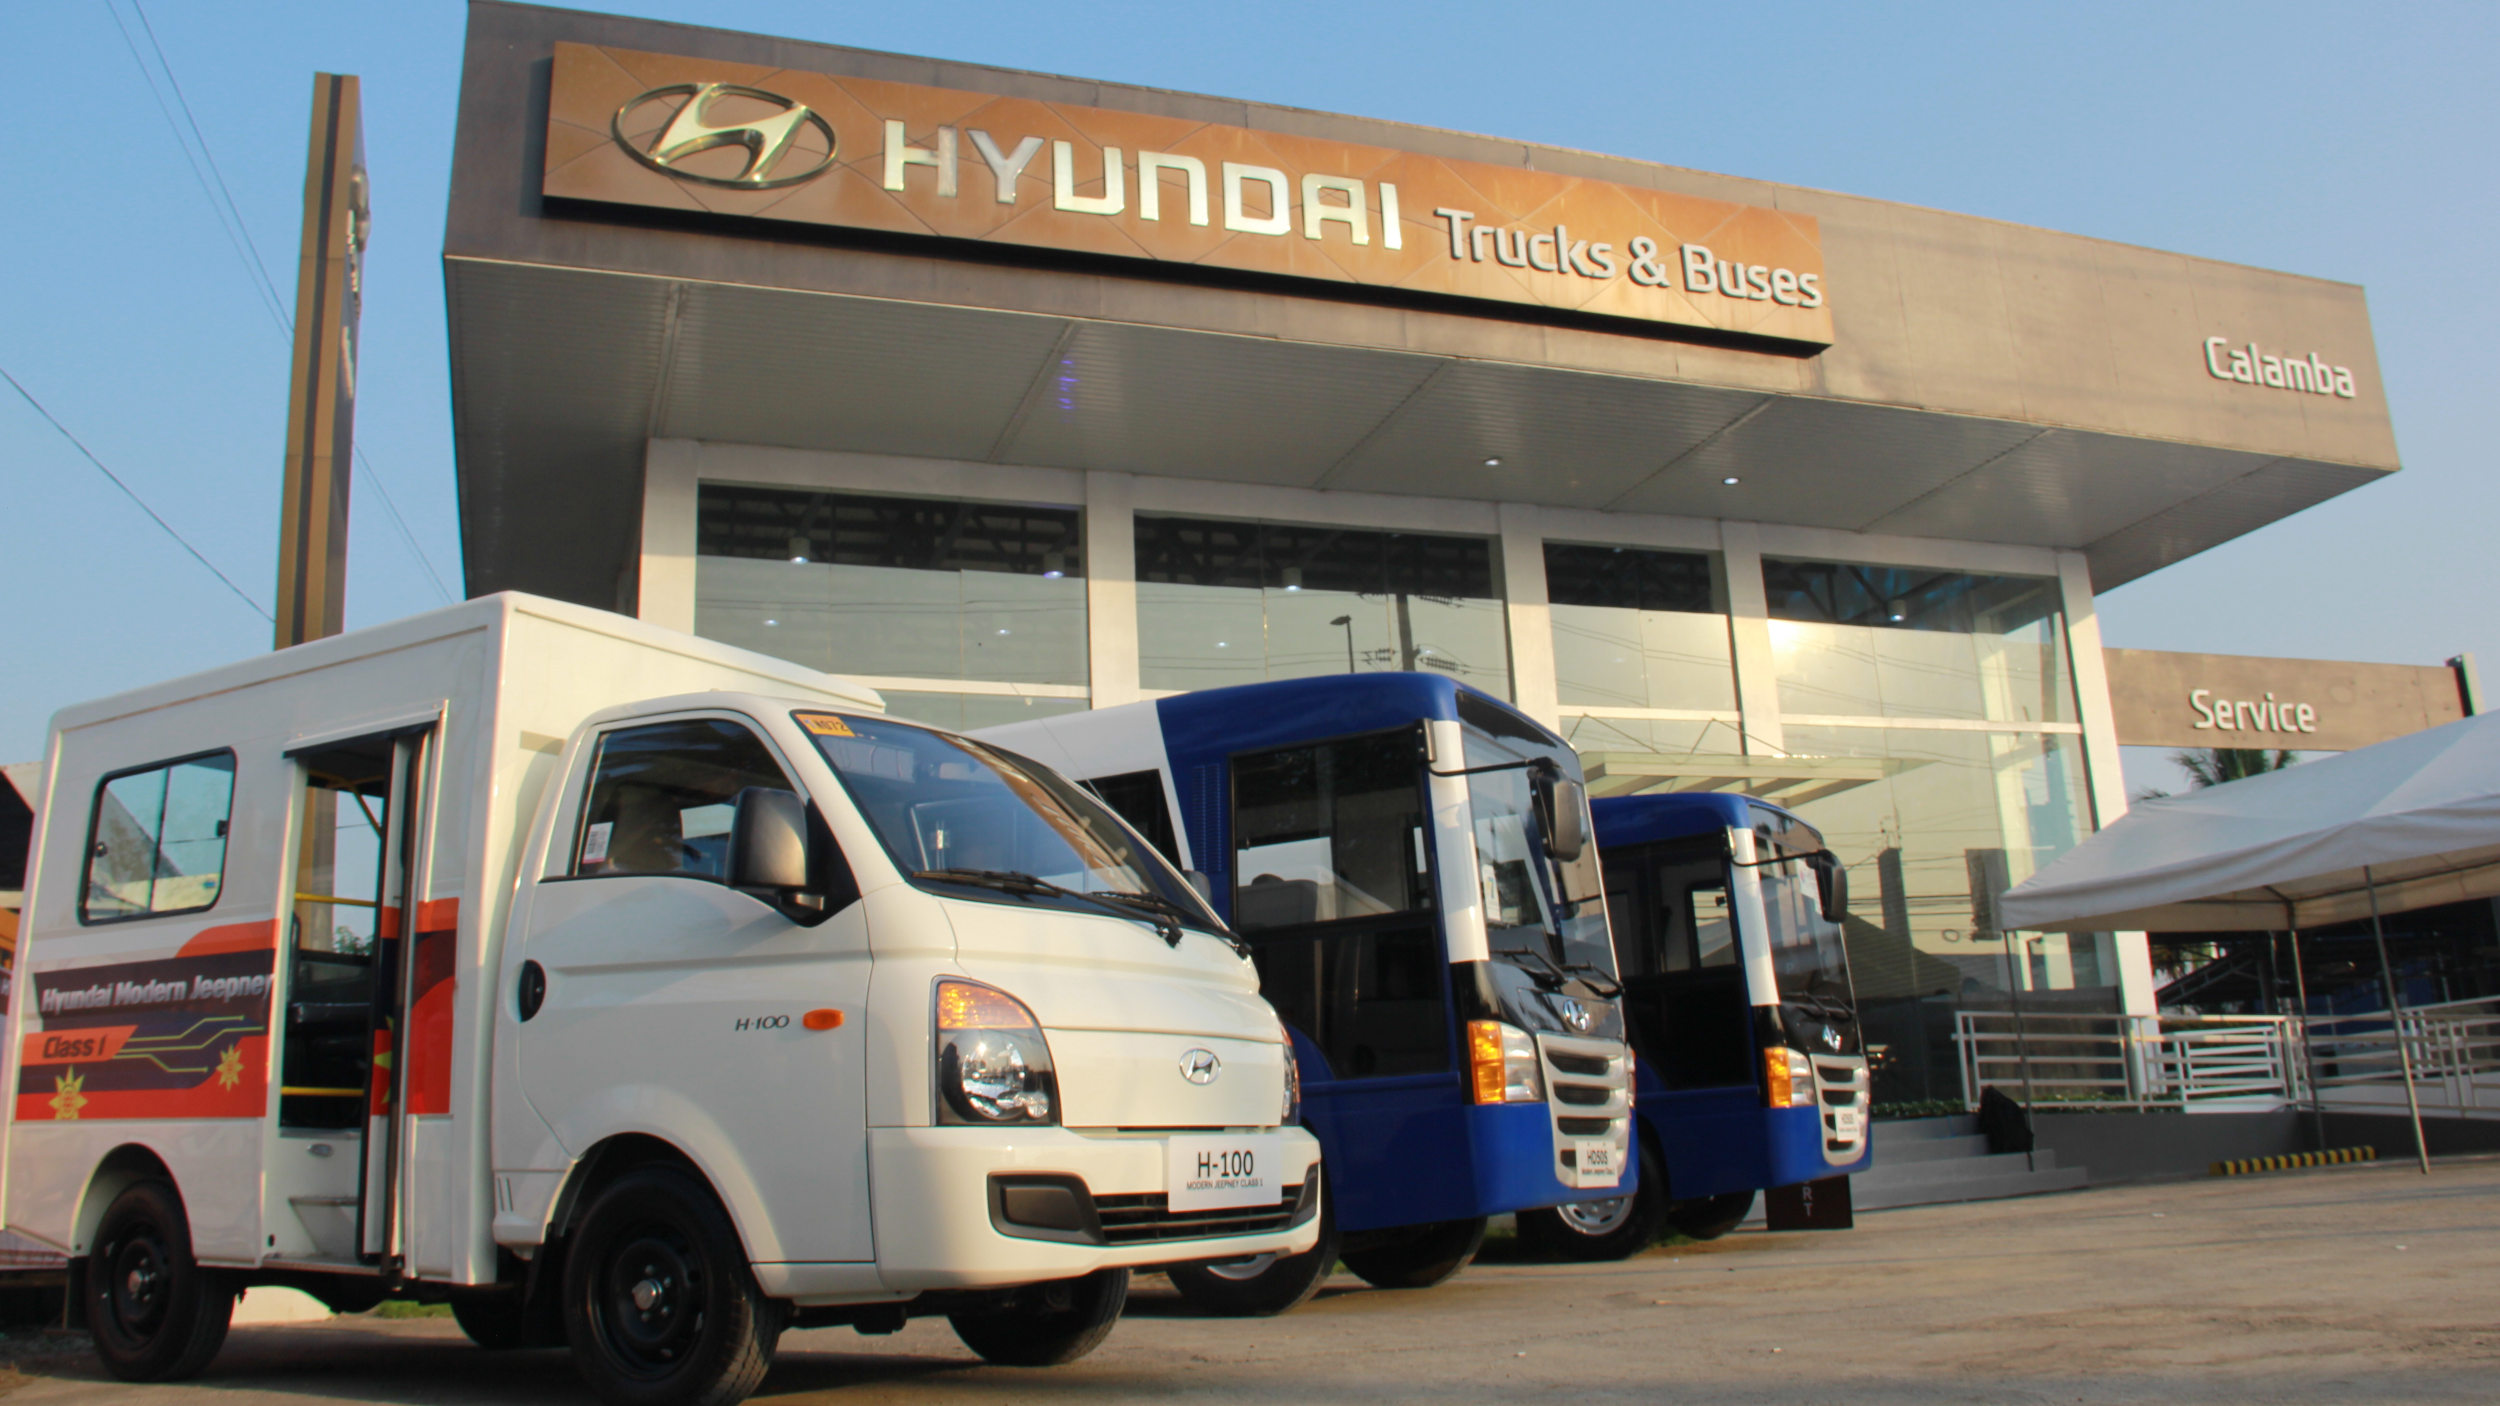 A Hyundai dealership in the Philippines